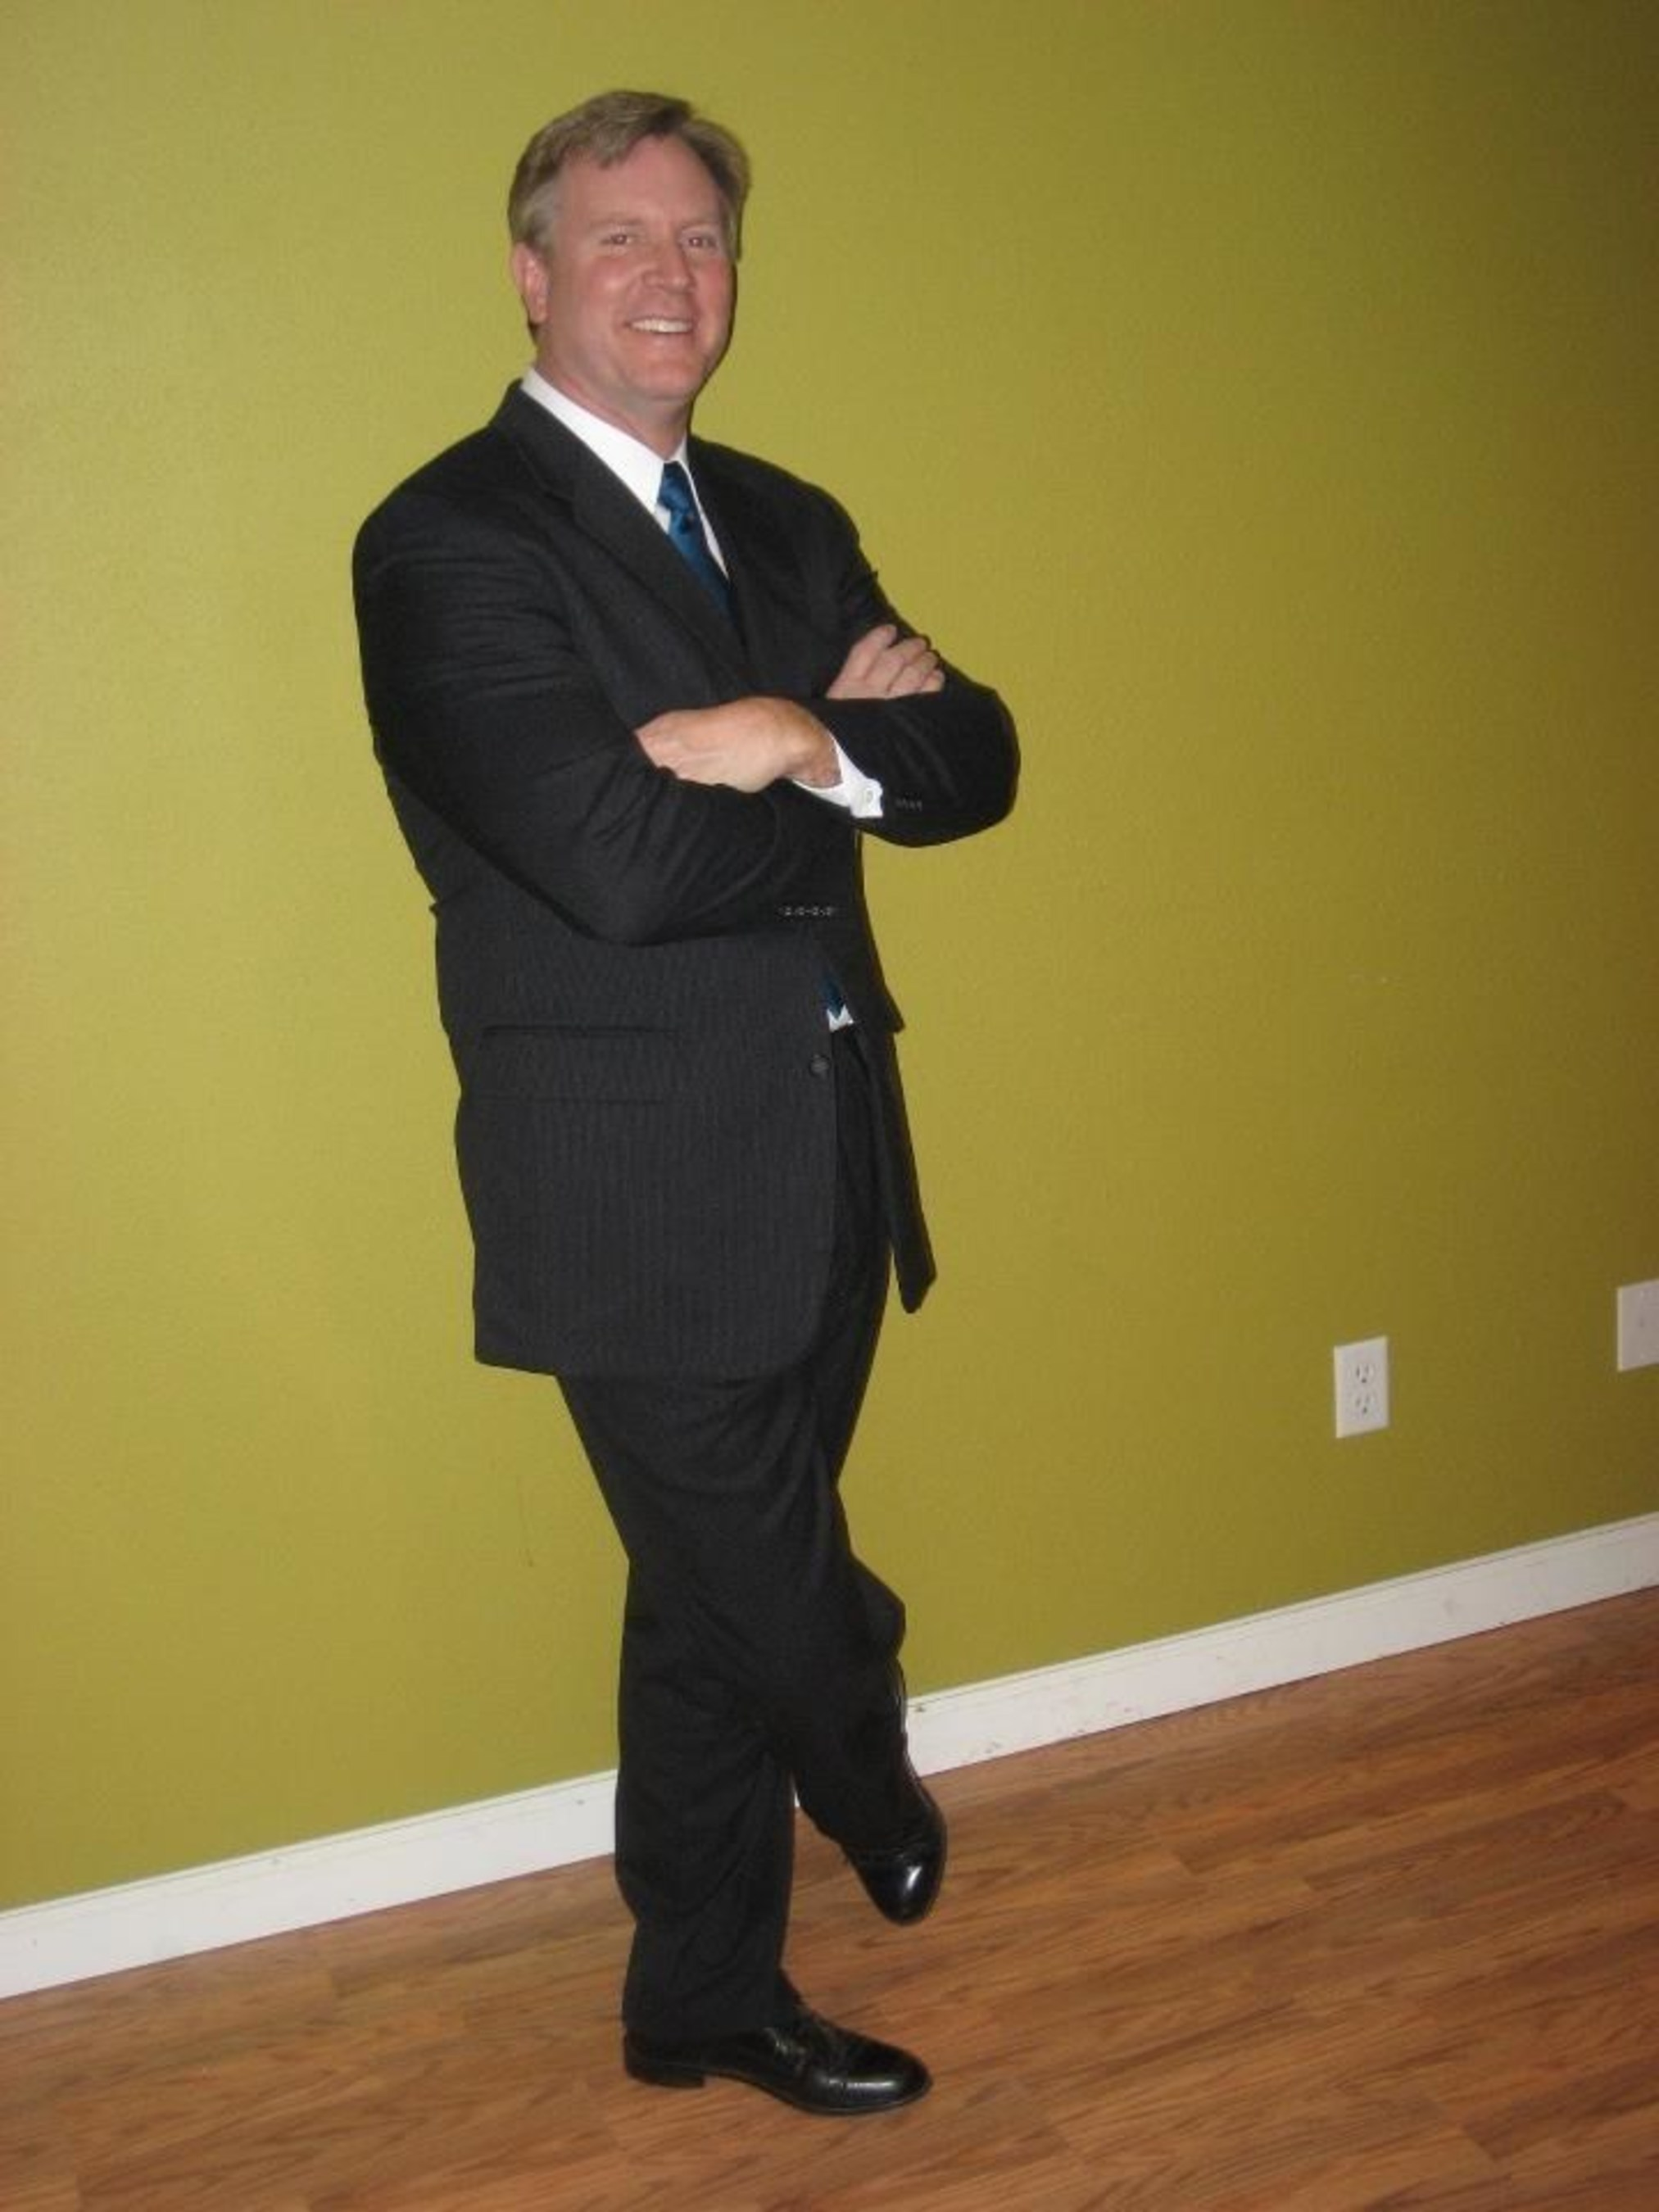 Auctioneer Alan A Armstrong of Sage Auctions LLC, 406-272-2526